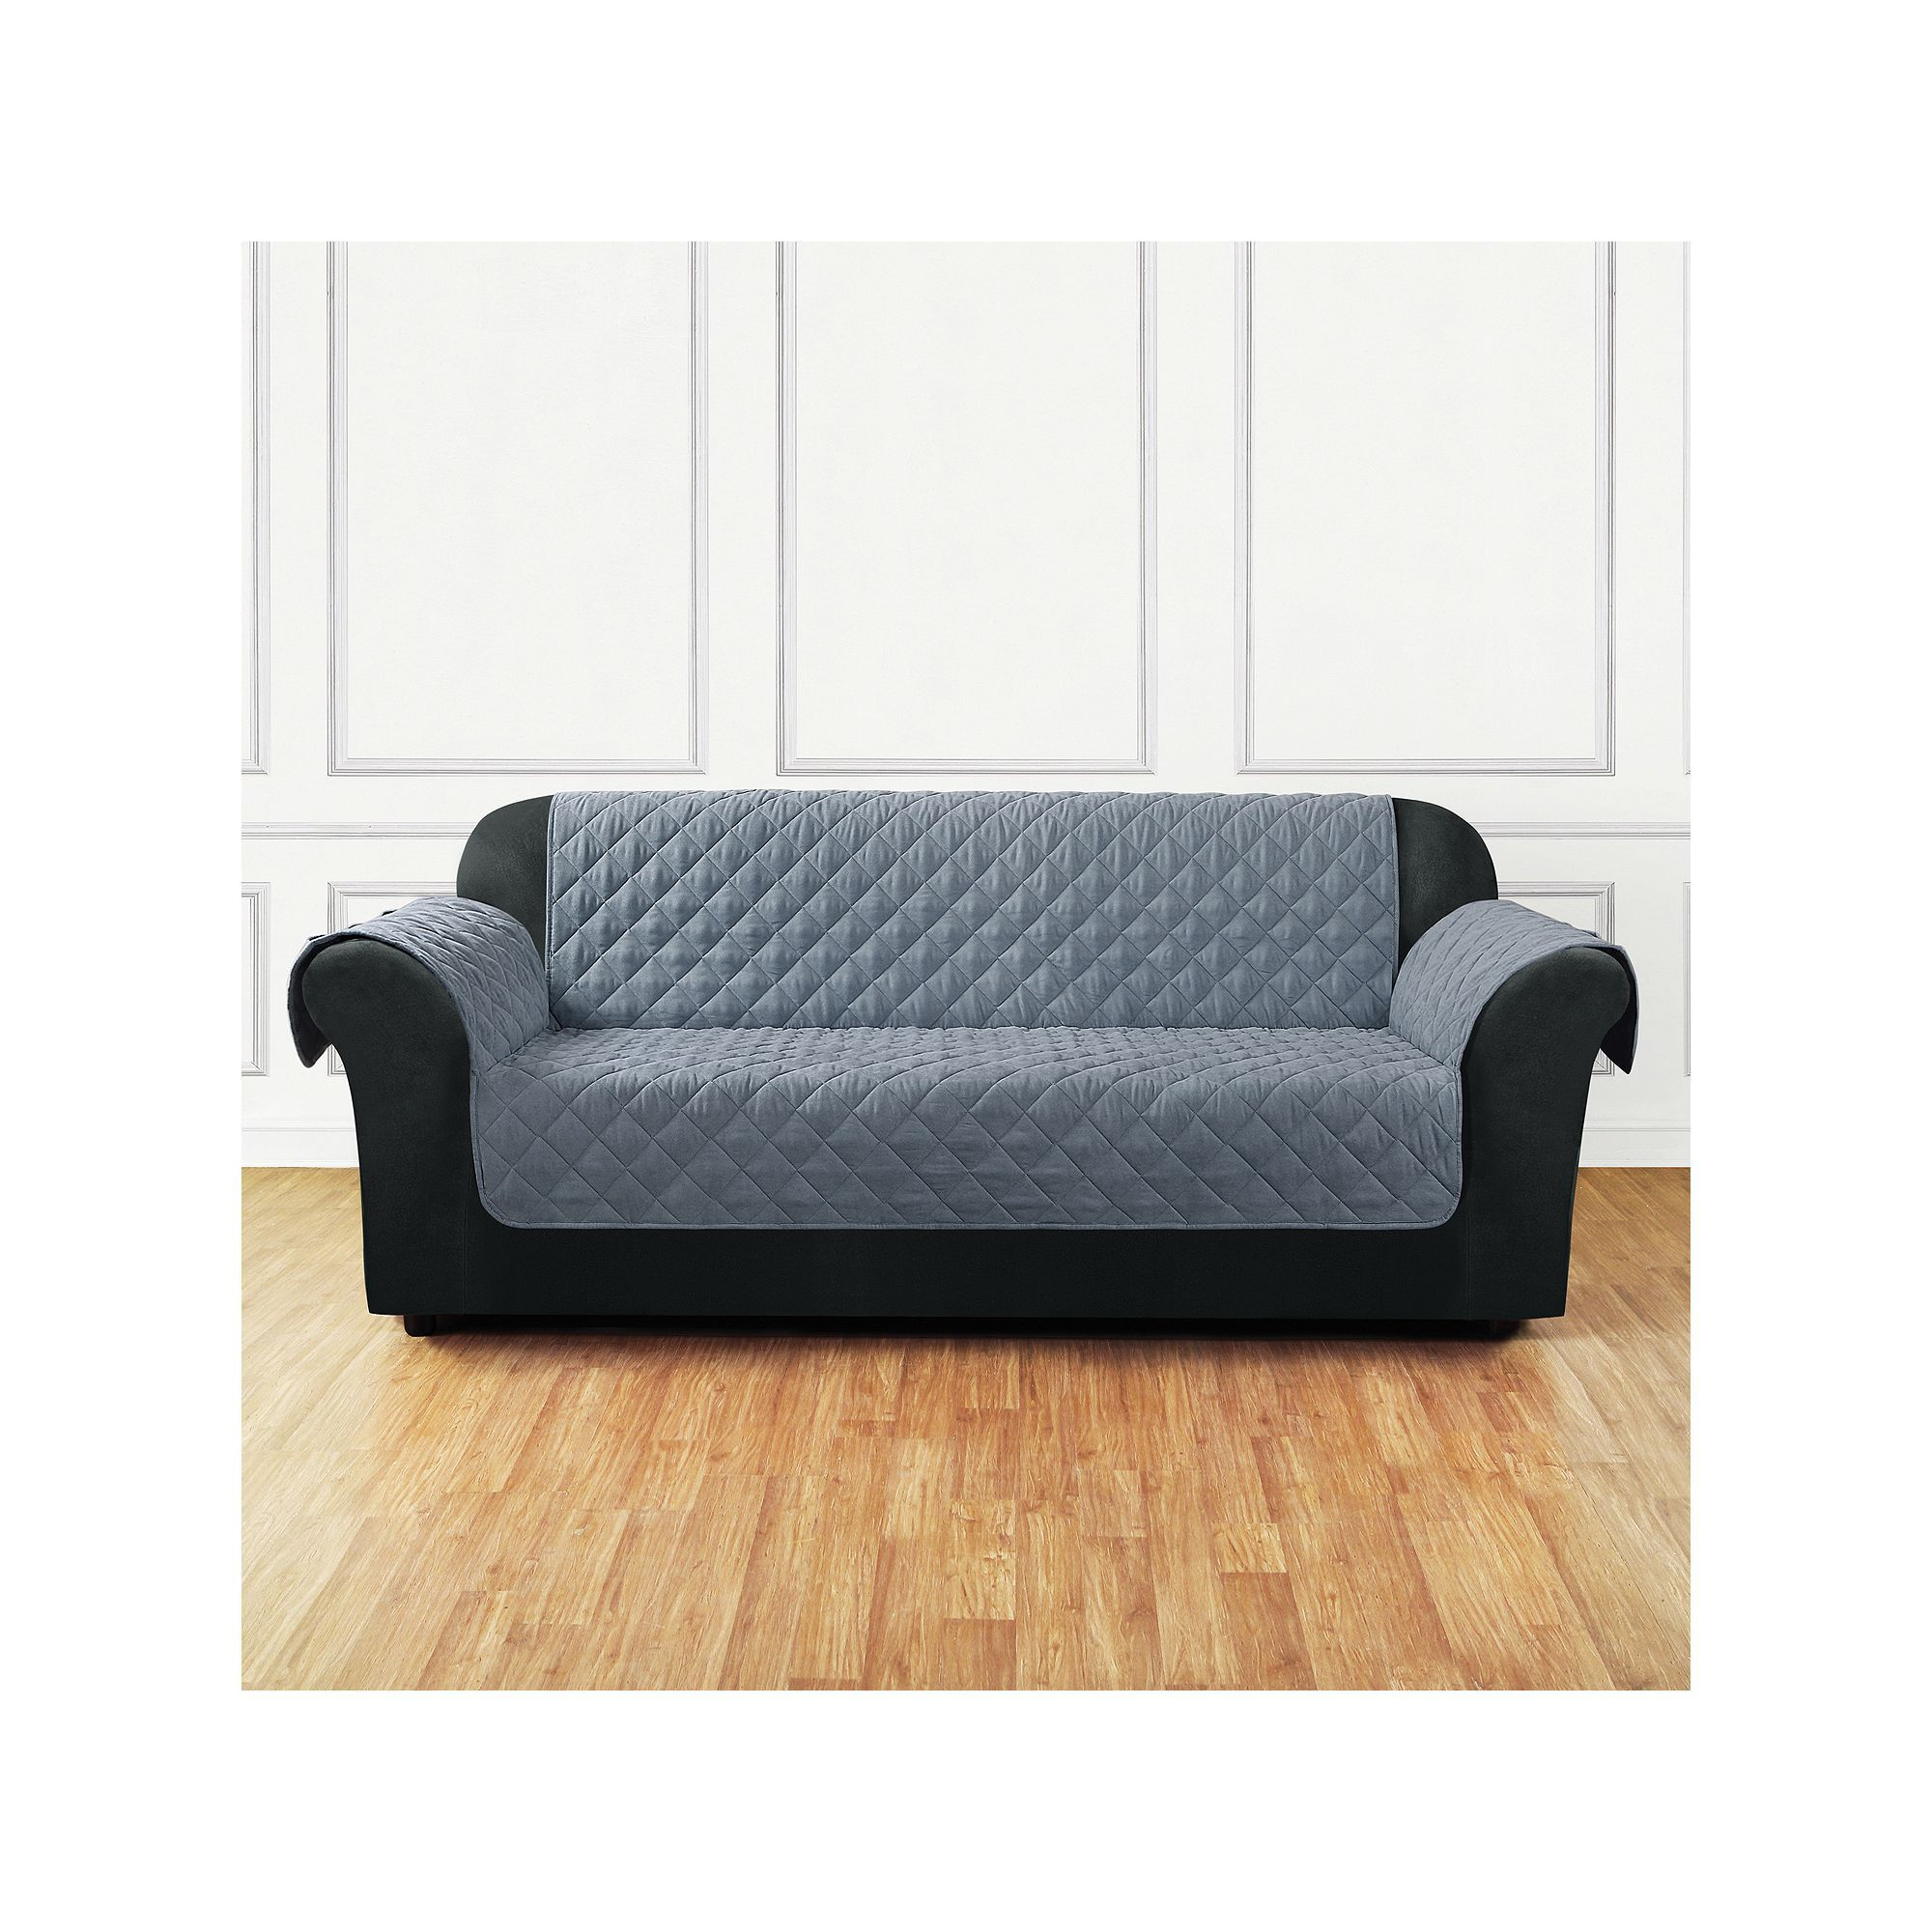 Sure Fit Breathable Mesh Sofa Slipcover